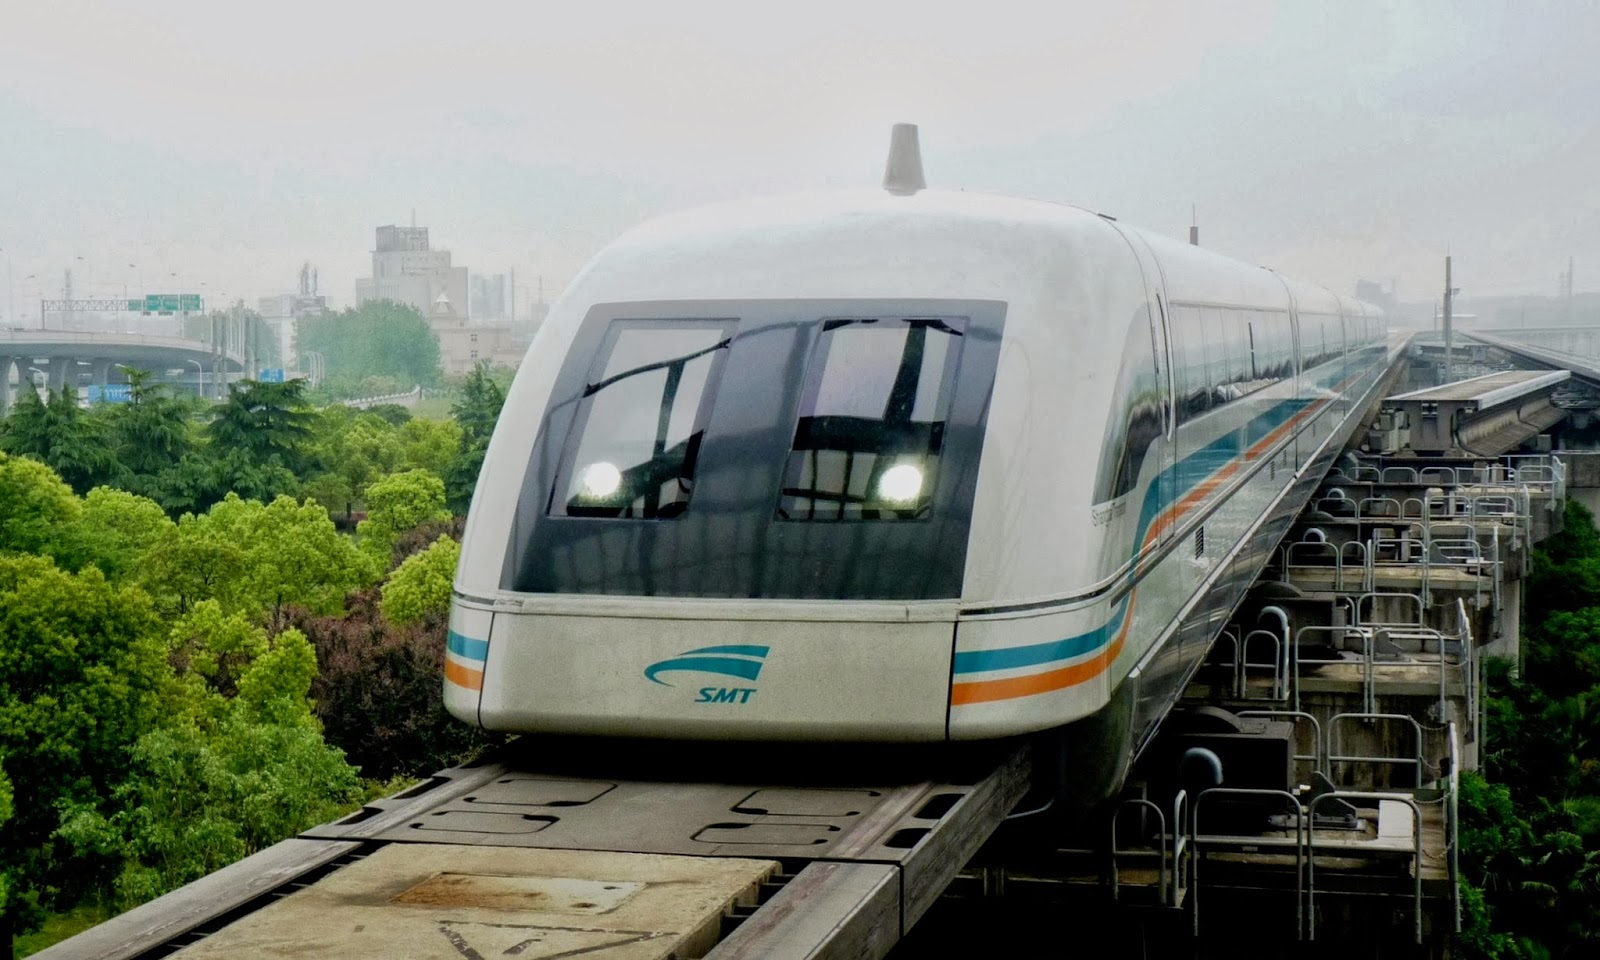 Shanghai Maglev Train Hd Wallpapers